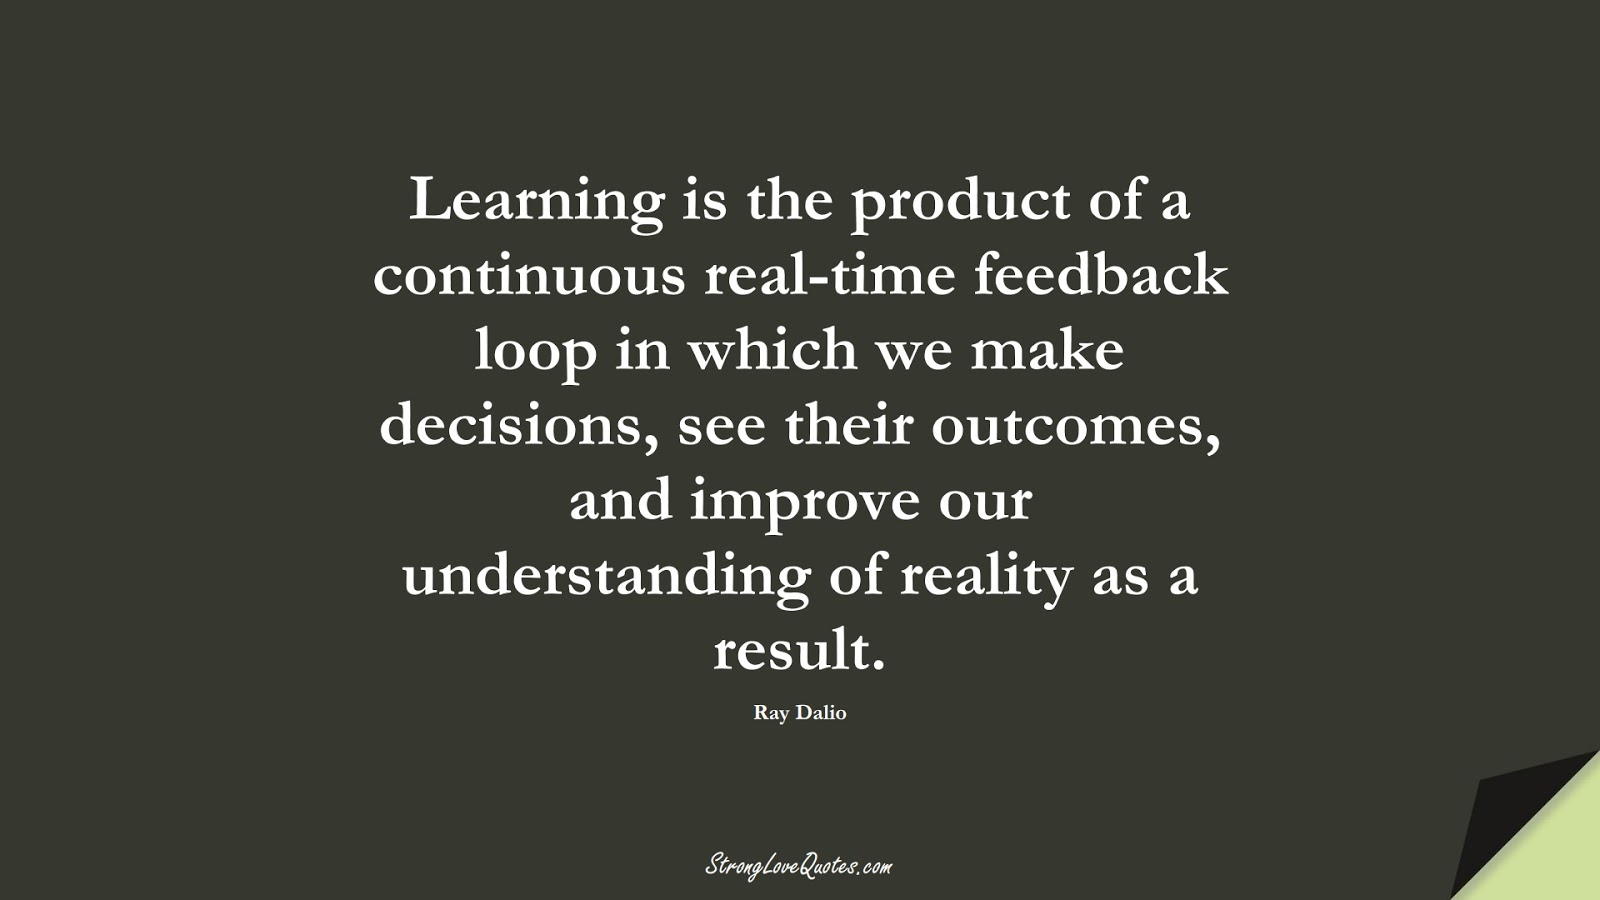 Learning is the product of a continuous real-time feedback loop in which we make decisions, see their outcomes, and improve our understanding of reality as a result. (Ray Dalio);  #LearningQuotes